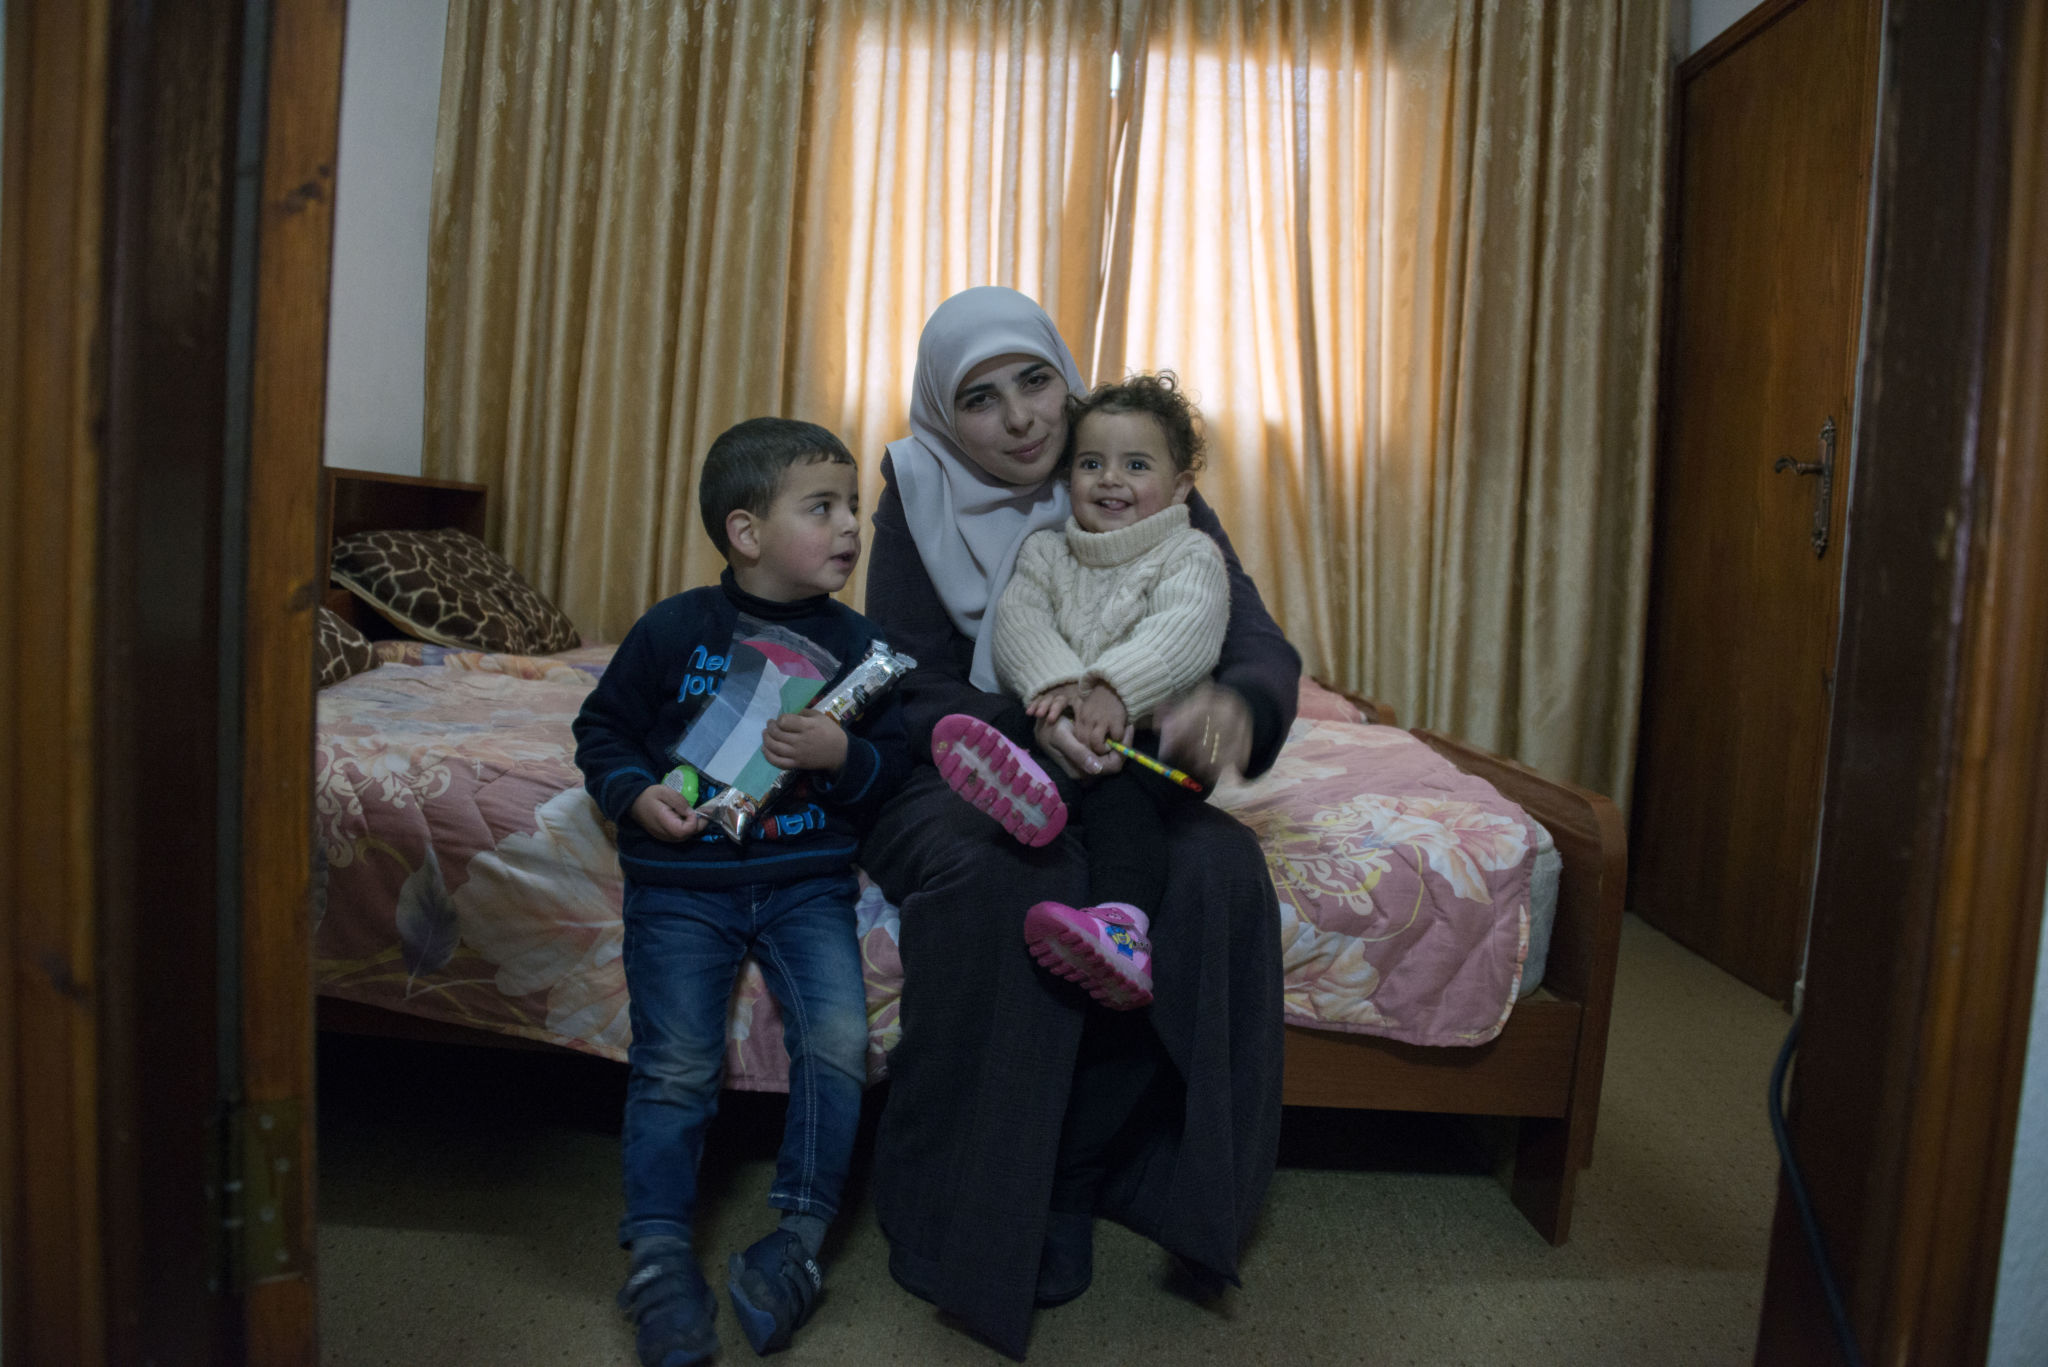 Al-Qiq's wife and children at home - Photo by Jordan Siegel